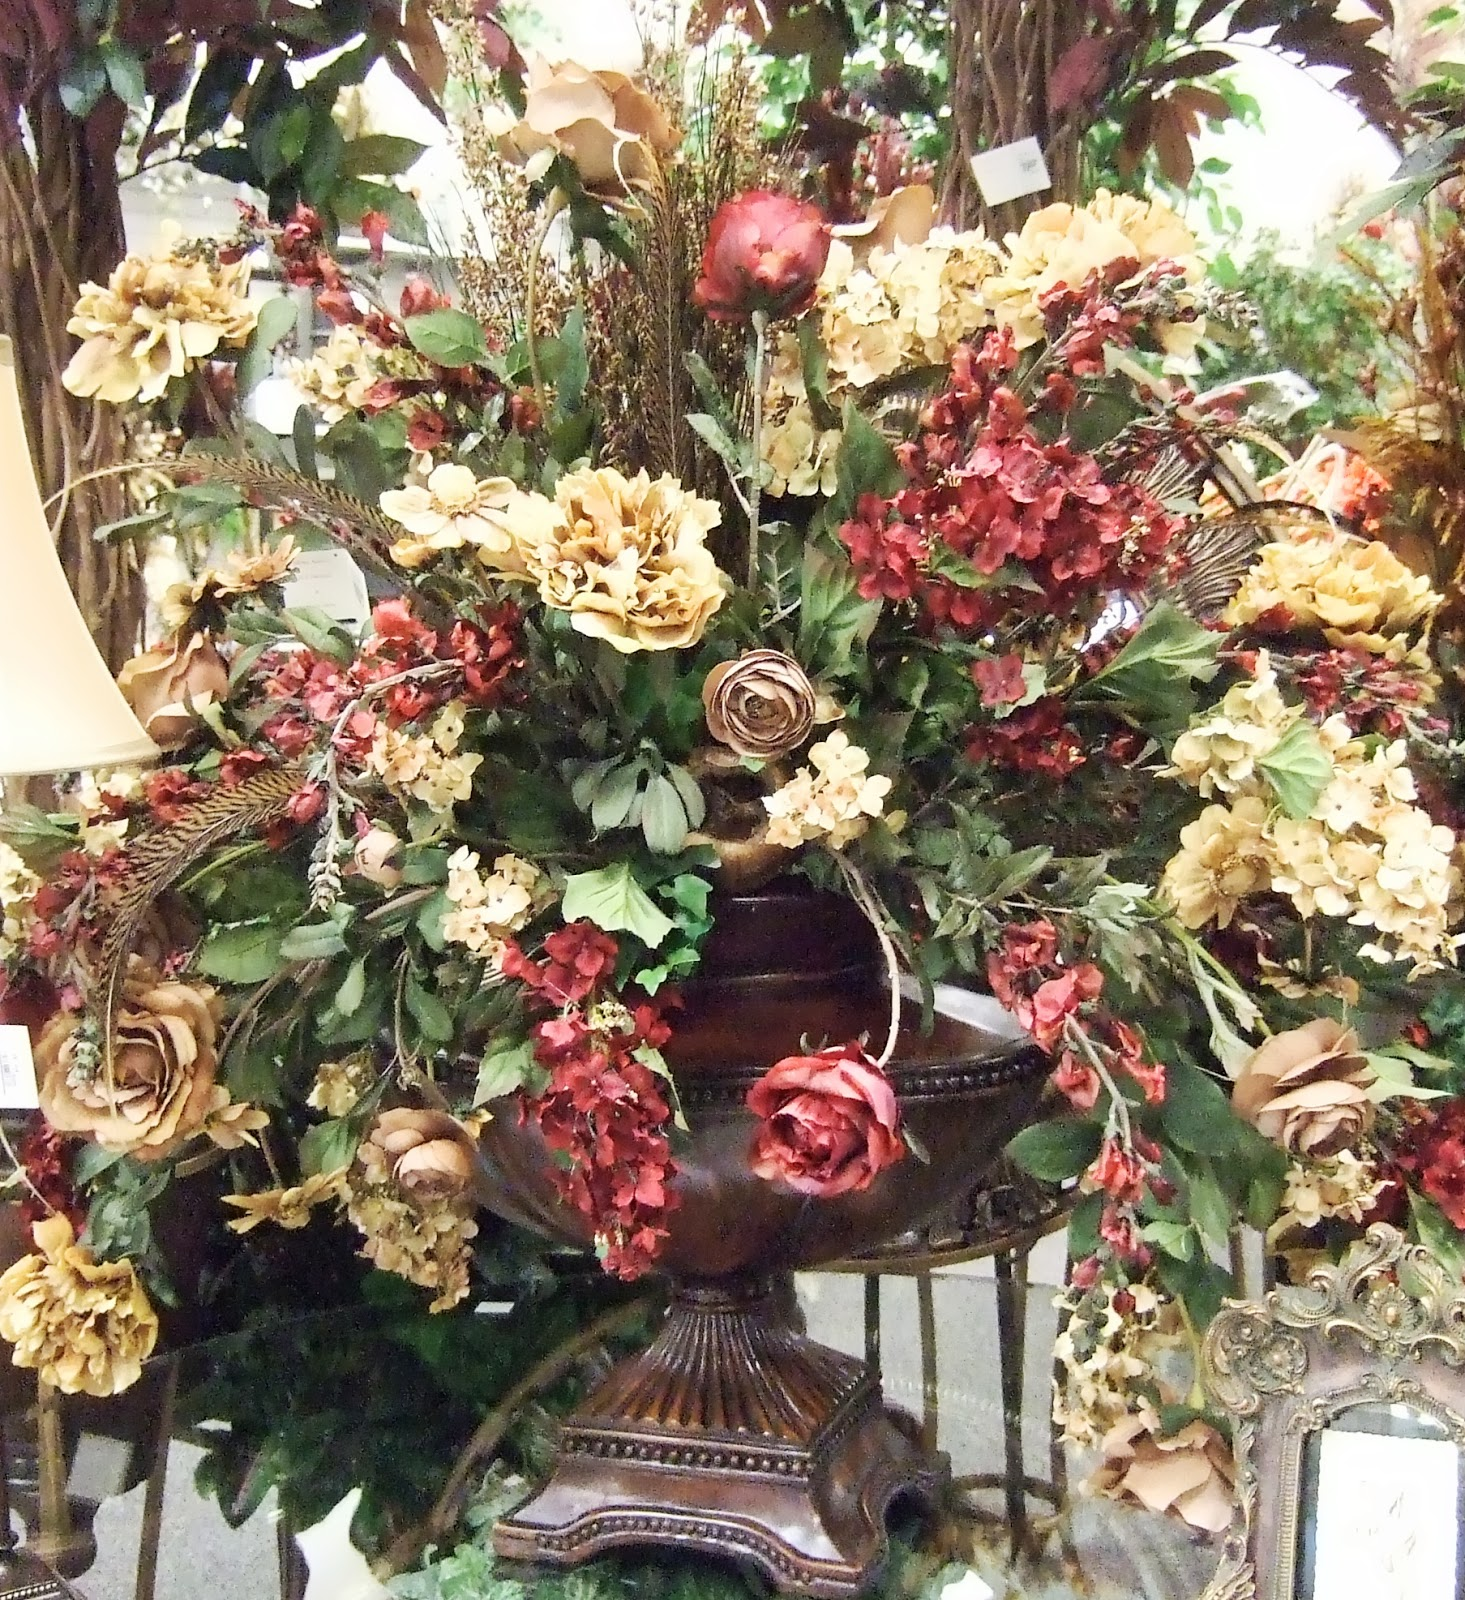 Ana silk flowers ideas elegant traditional for Artificial flowers decoration ideas